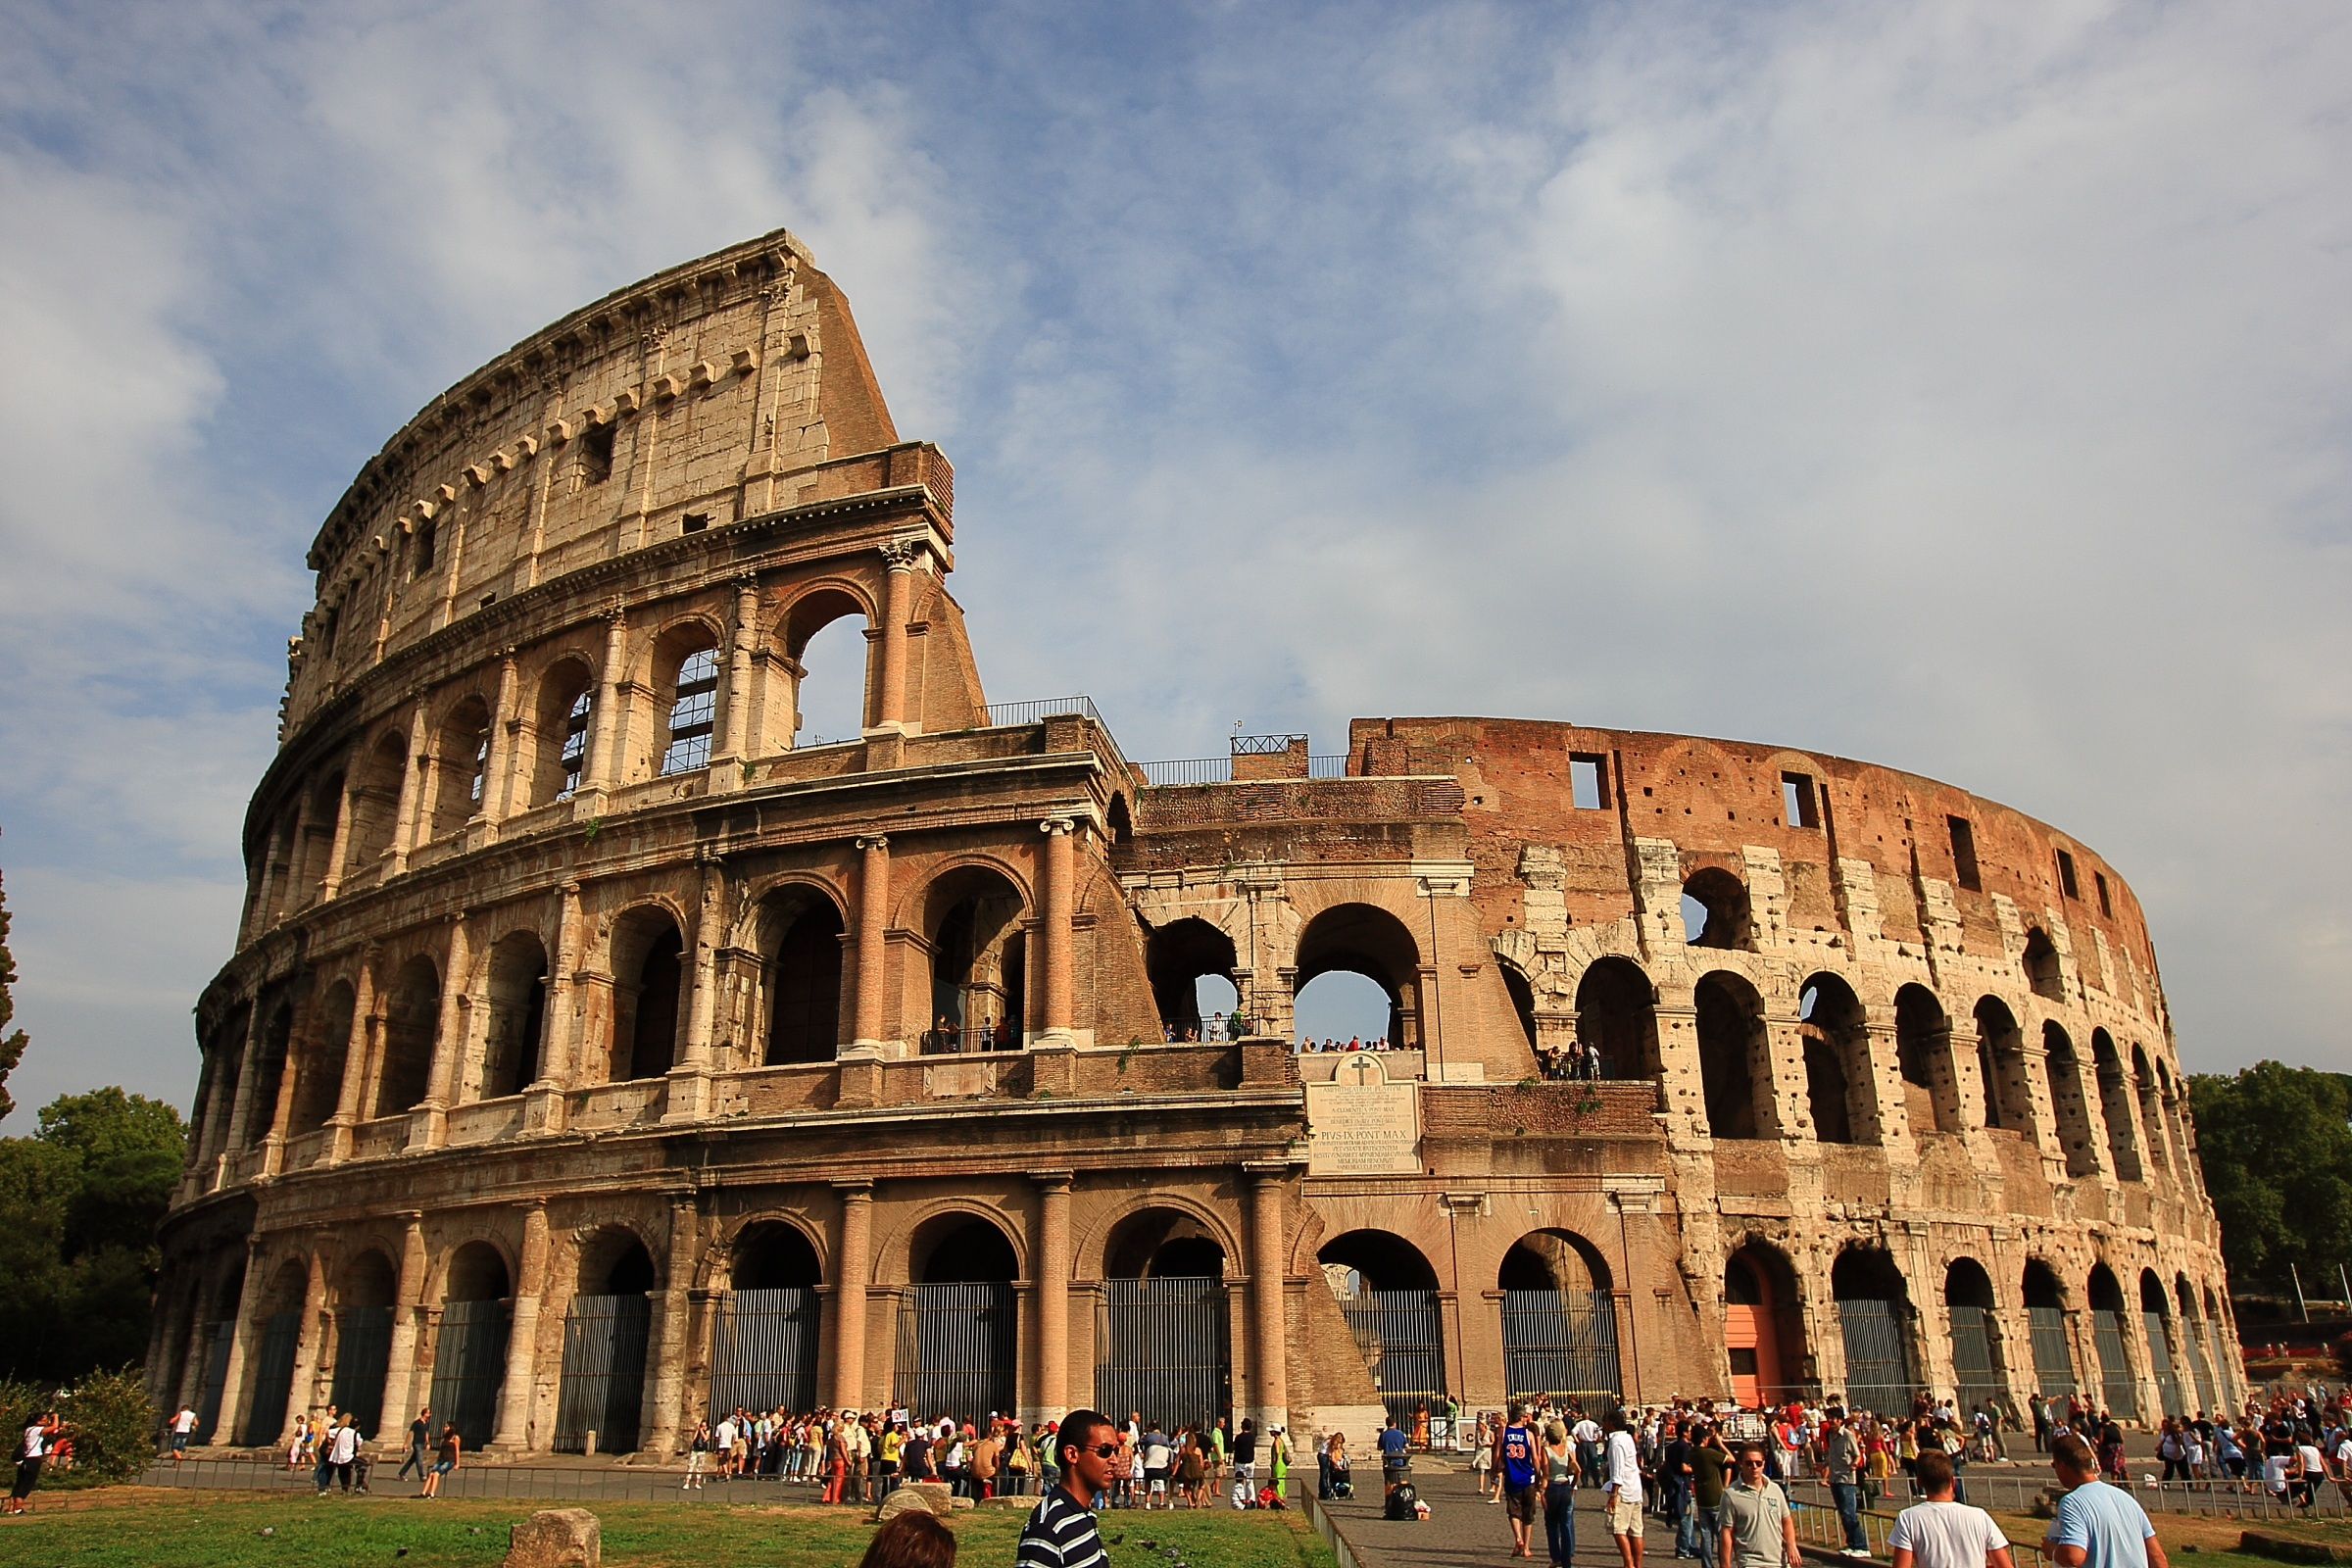 6_the-colosseum-2182384.jpg